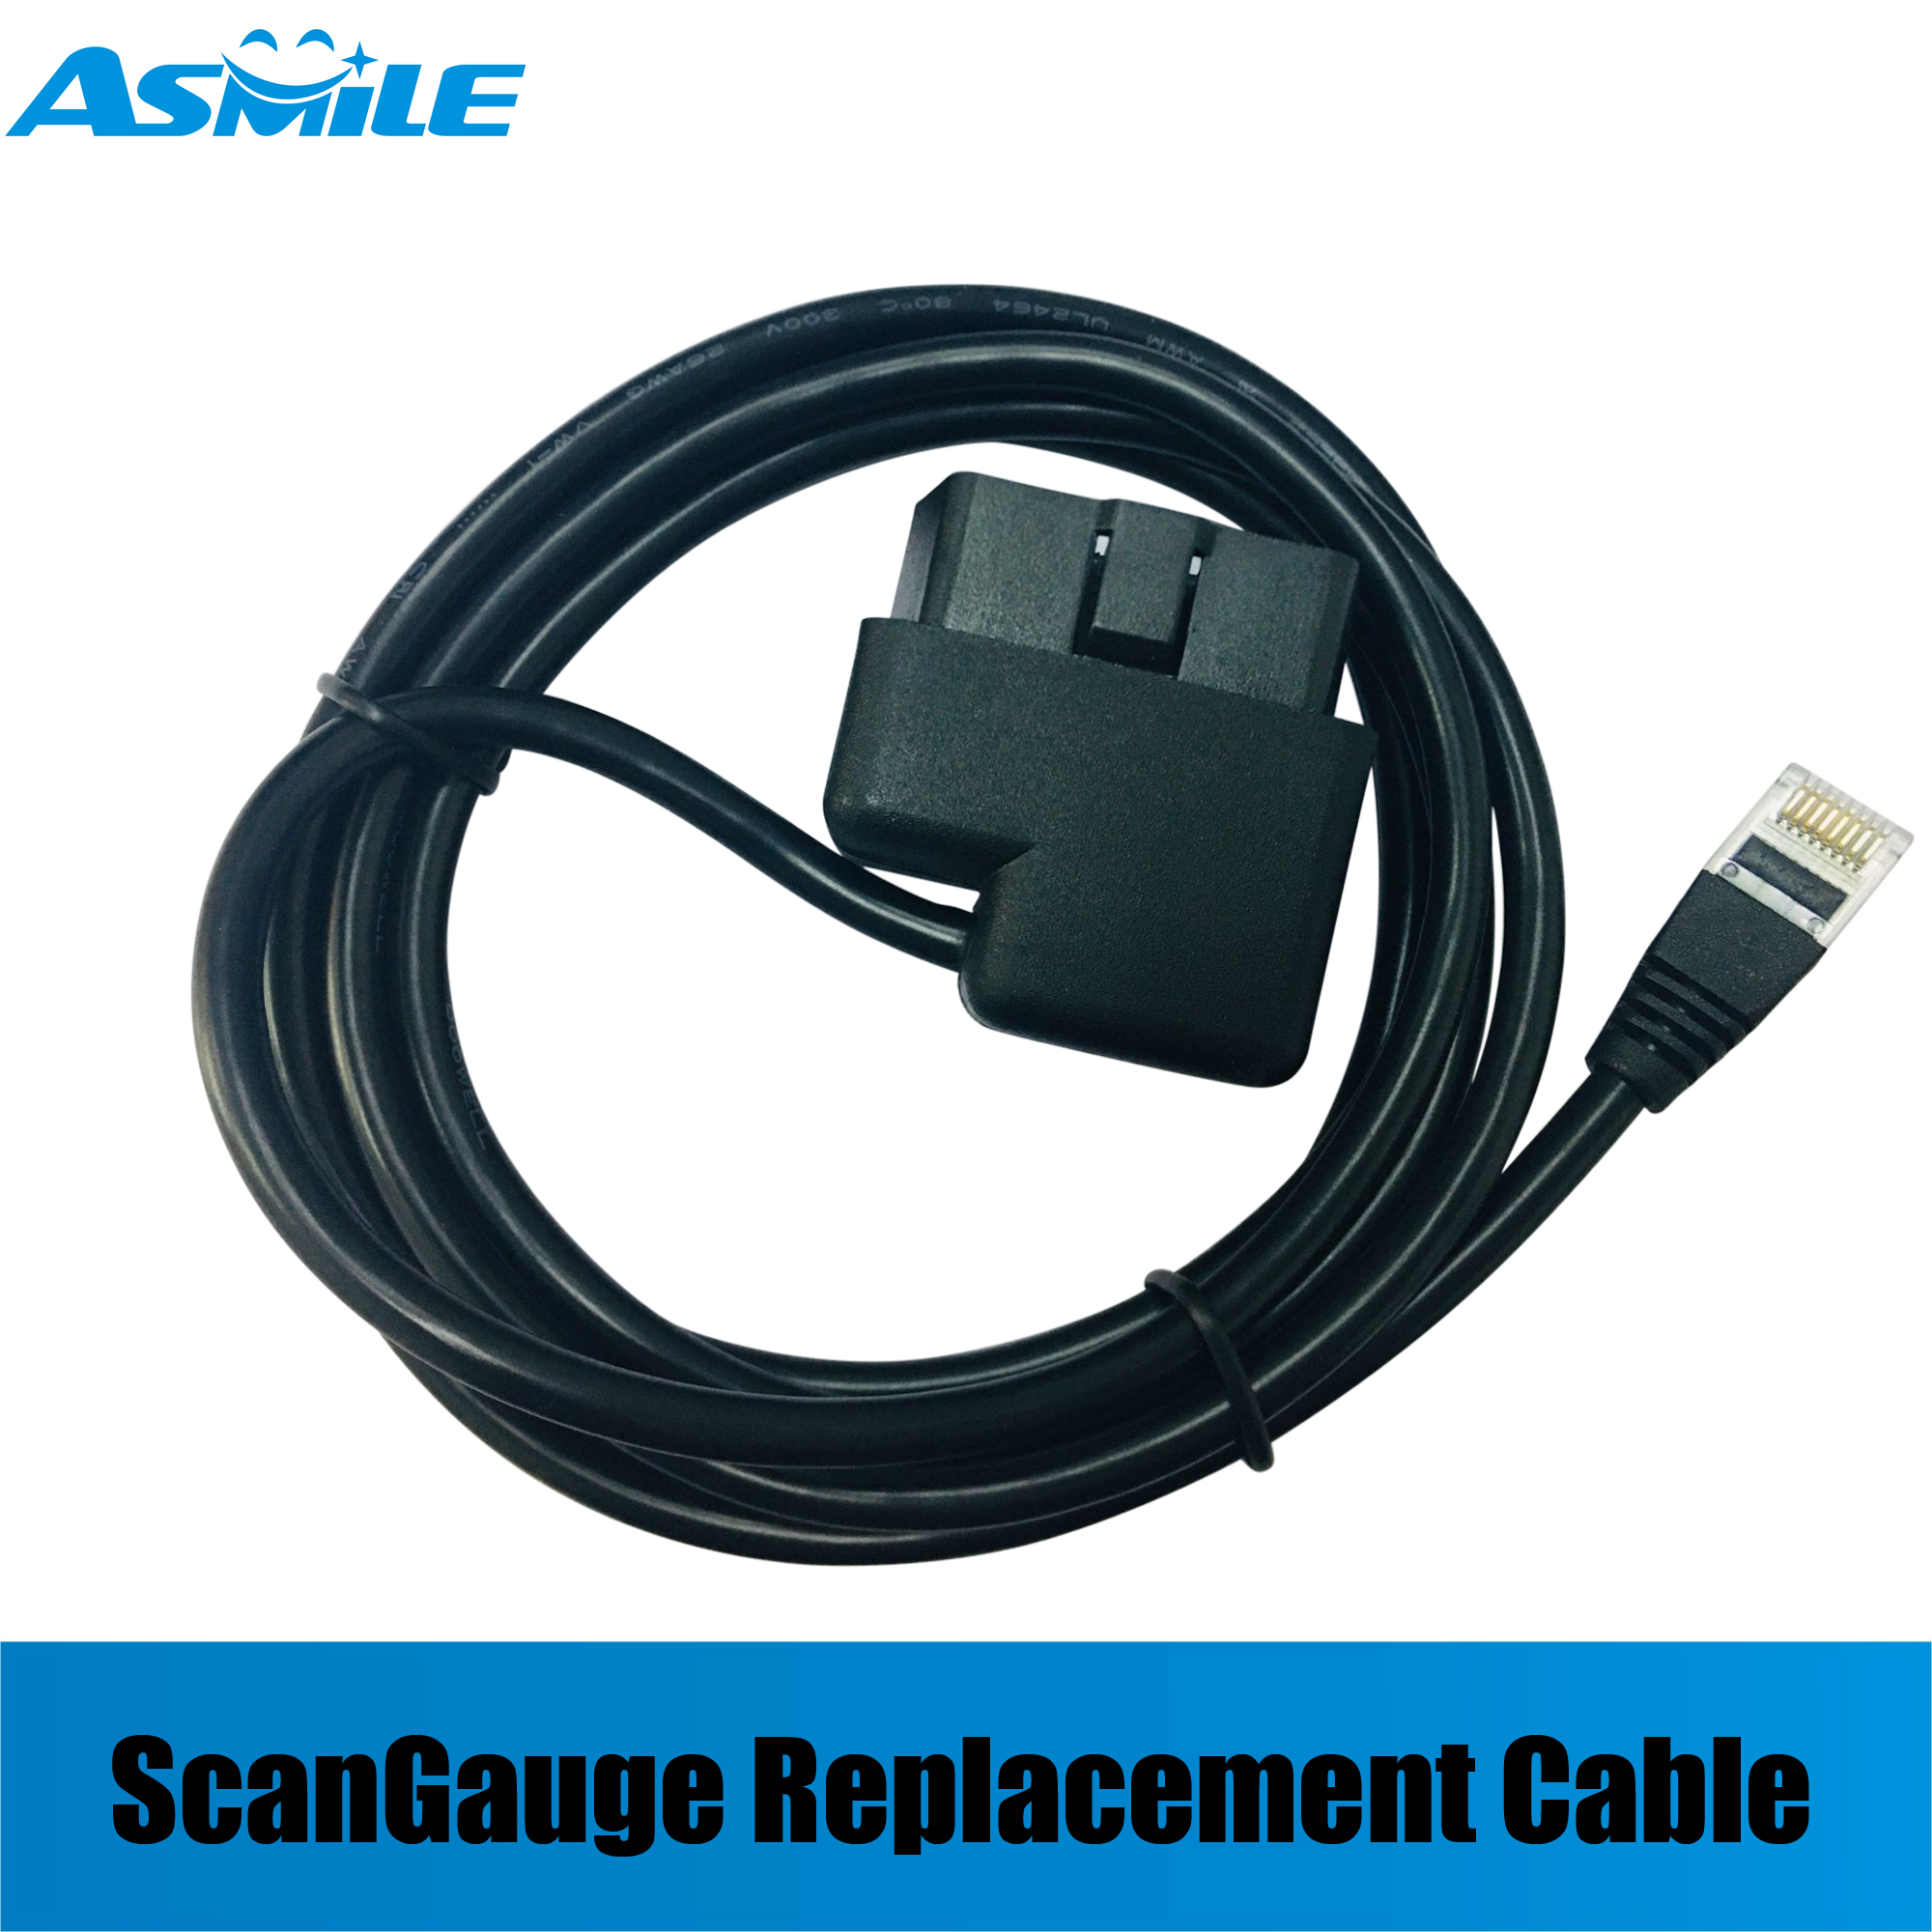 ScanGauge  II  Scan Gauge  OBD-II Replacement Cable Right Angle To OBD-RJ45 ,